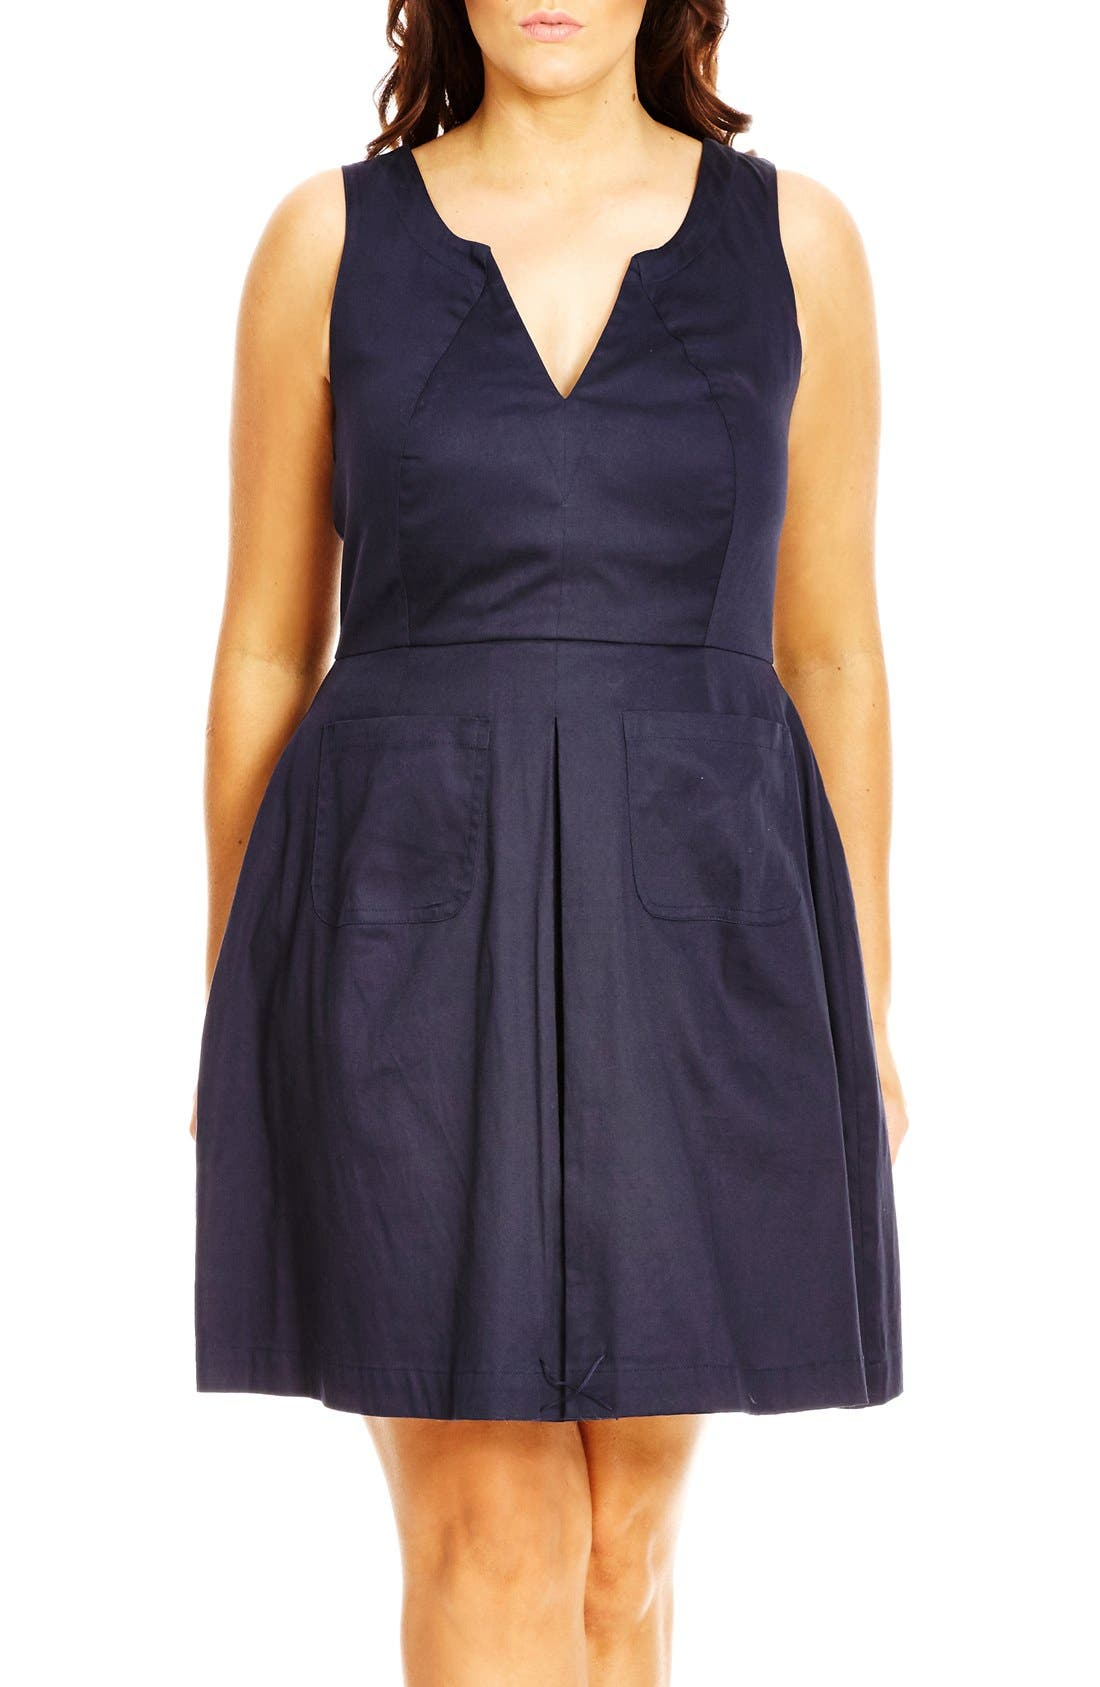 Main Image - City Chic 'Mod Madness' Notch Neck Fit & Flare Dress (Plus Size)